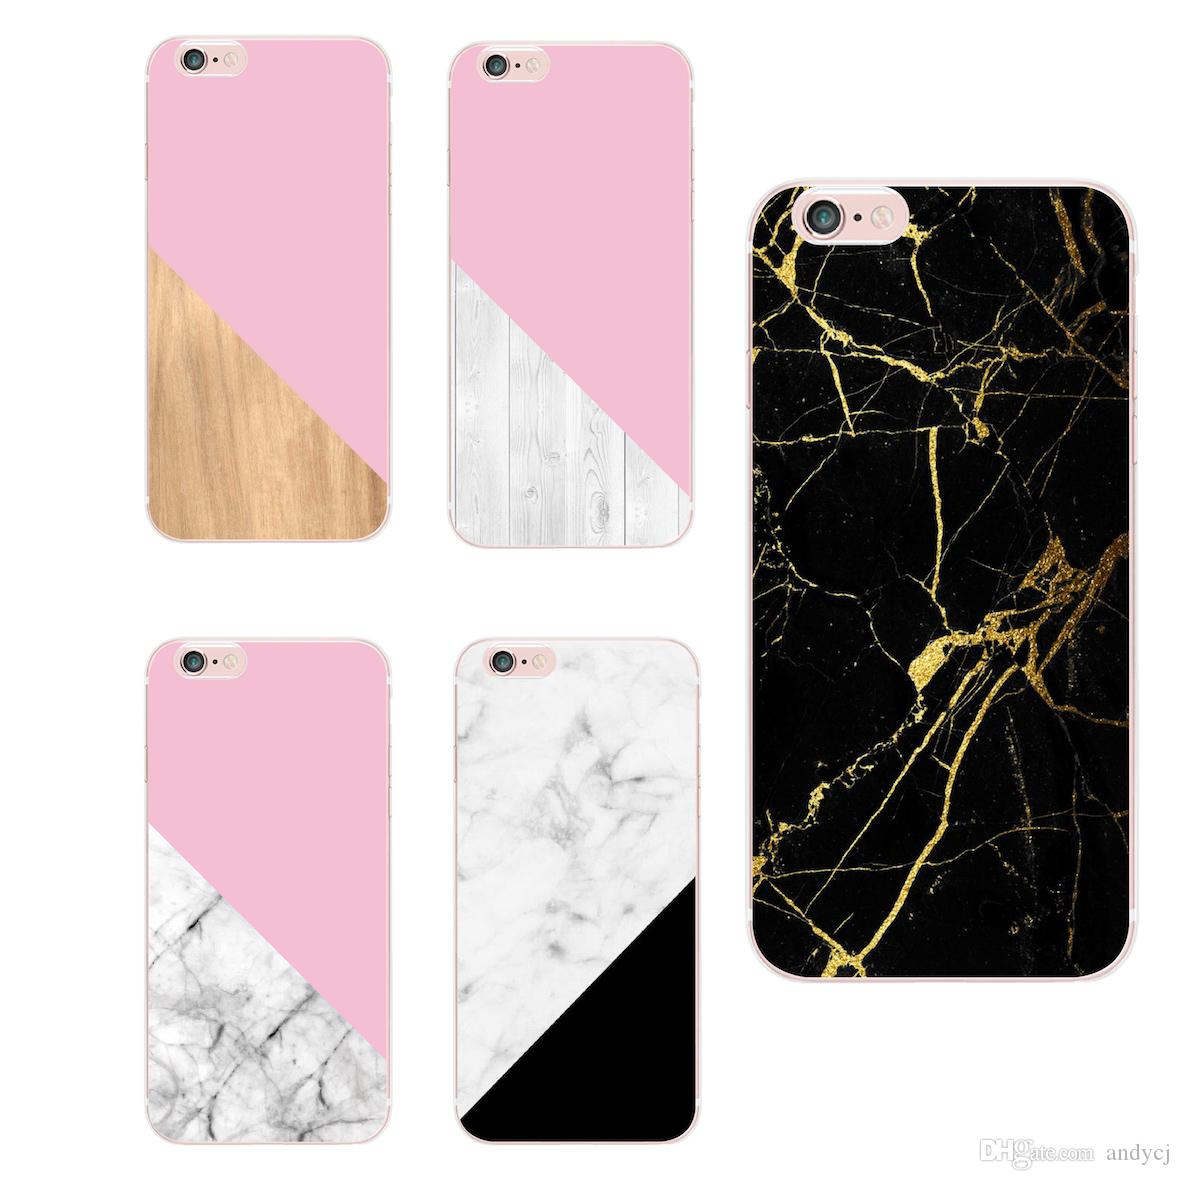 fashion colorful marble stone cover skin transparent soft tpu casesfashion colorful marble stone cover skin transparent soft tpu cases for apple iphone 5 5s se 6 6s plus 7 plus best cell phone case cell phone case wallet